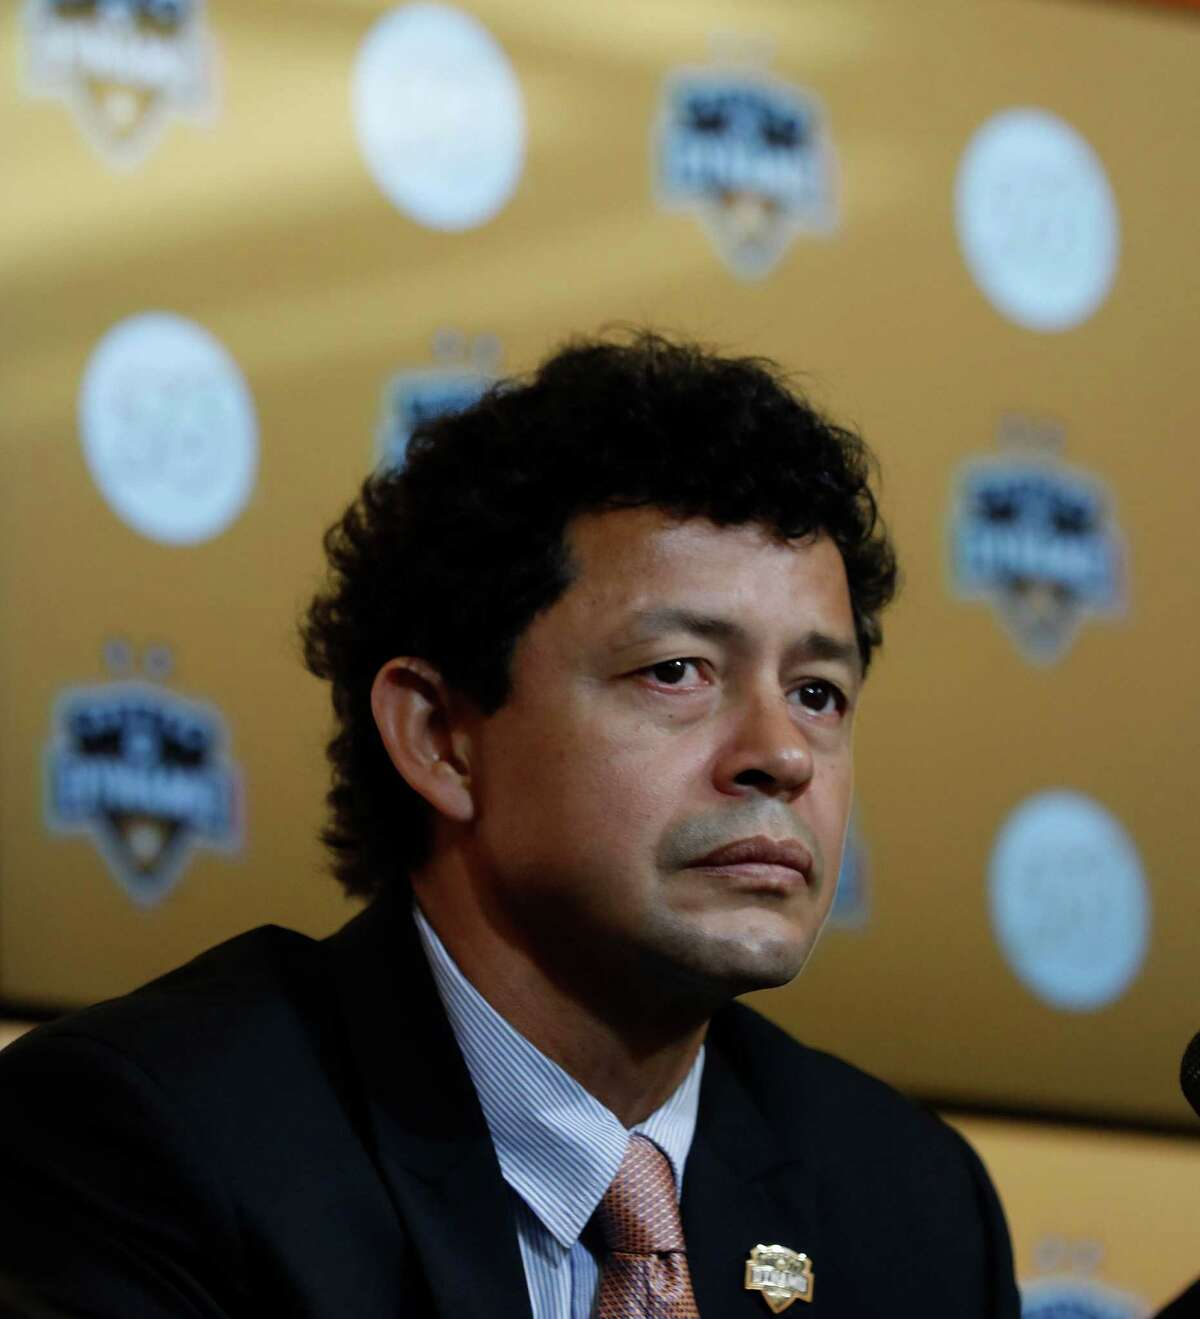 Wilmer Cabrera speaks after being introduced as the new head coach for the Houston Dynamo at BBVA Compass Friday,Oct. 28, 2016 in Houston.